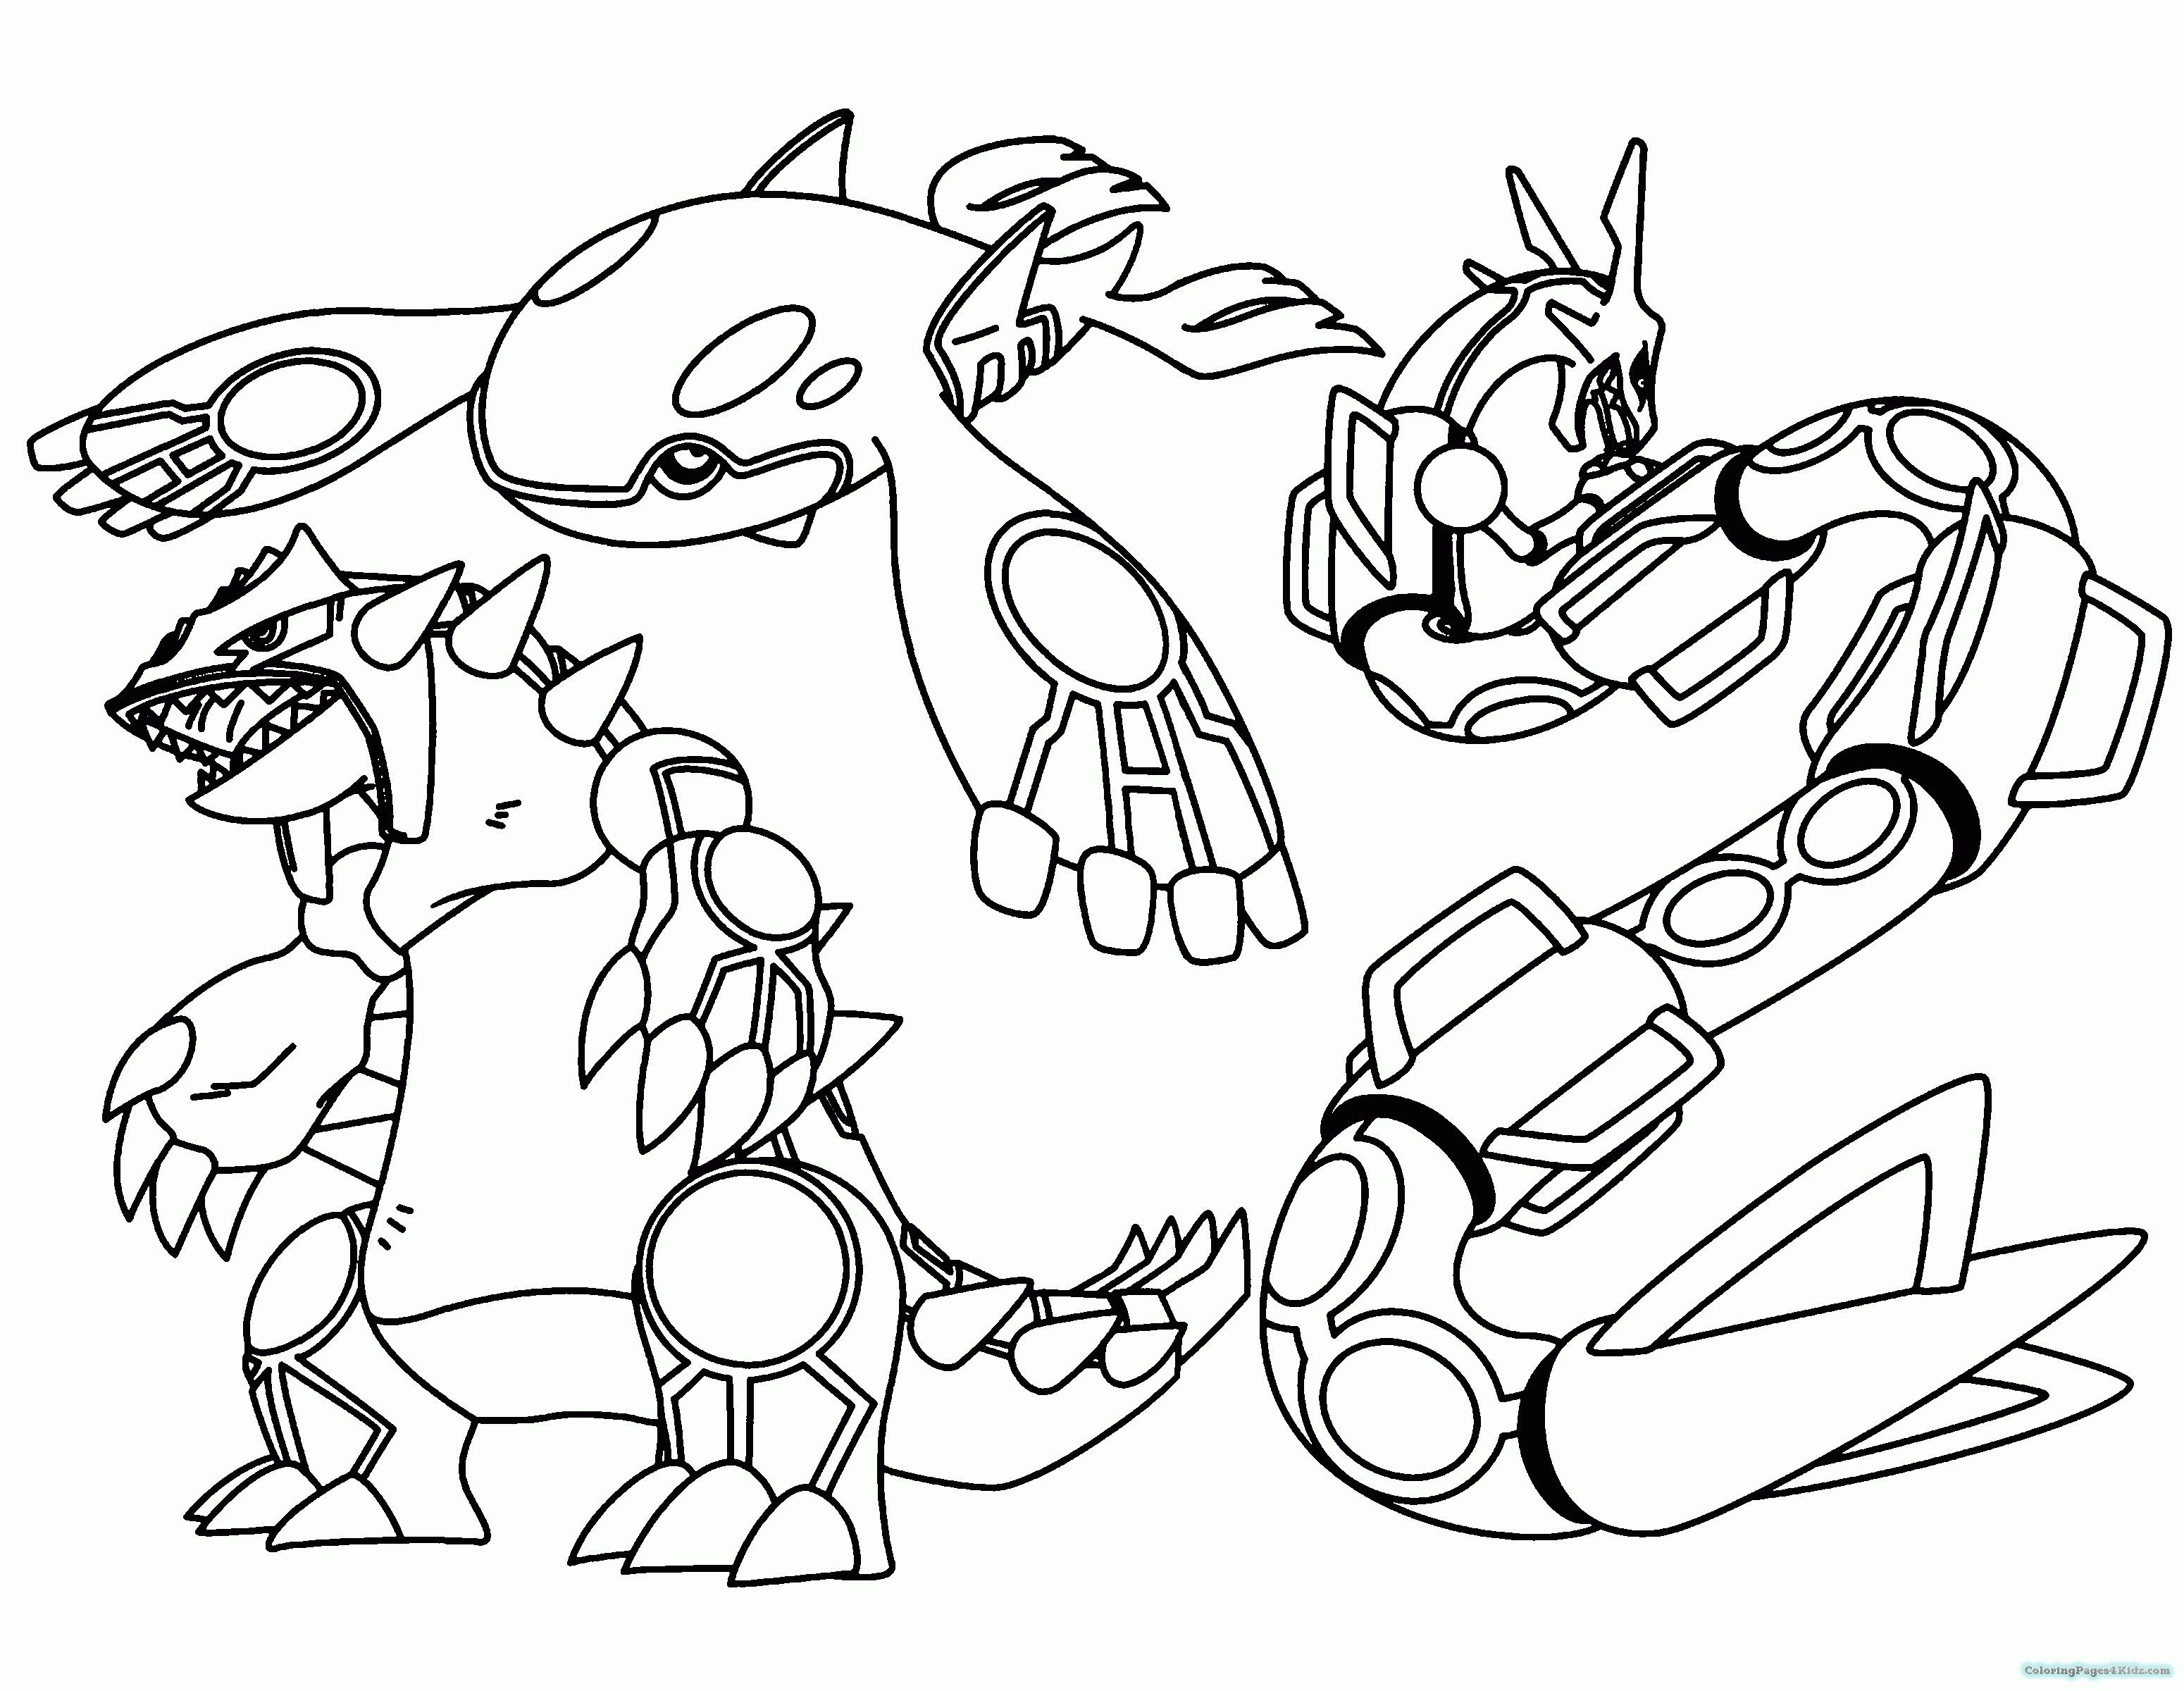 Legendary Pokemon Coloring Pages Free Http Www Wallpaperartdesignhd Us Legendary Pokemon Pokemon Coloring Pages Cartoon Coloring Pages Mandala Coloring Pages